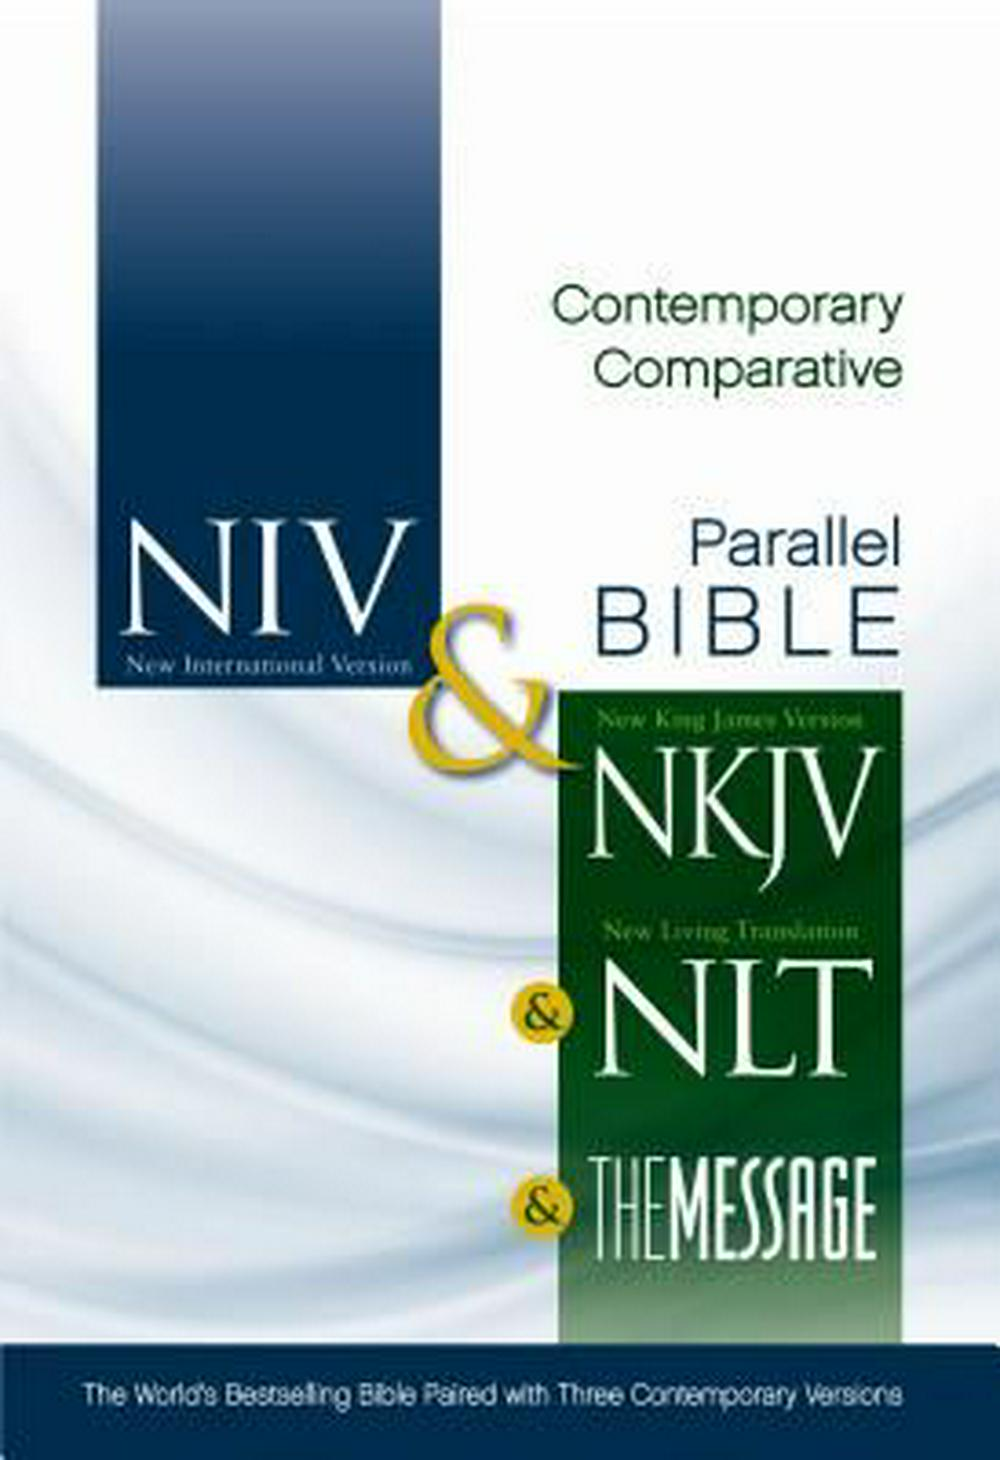 Contemporary Comparative Side-By-Side Bible-PR-NIV/NKJV/NLT/MS